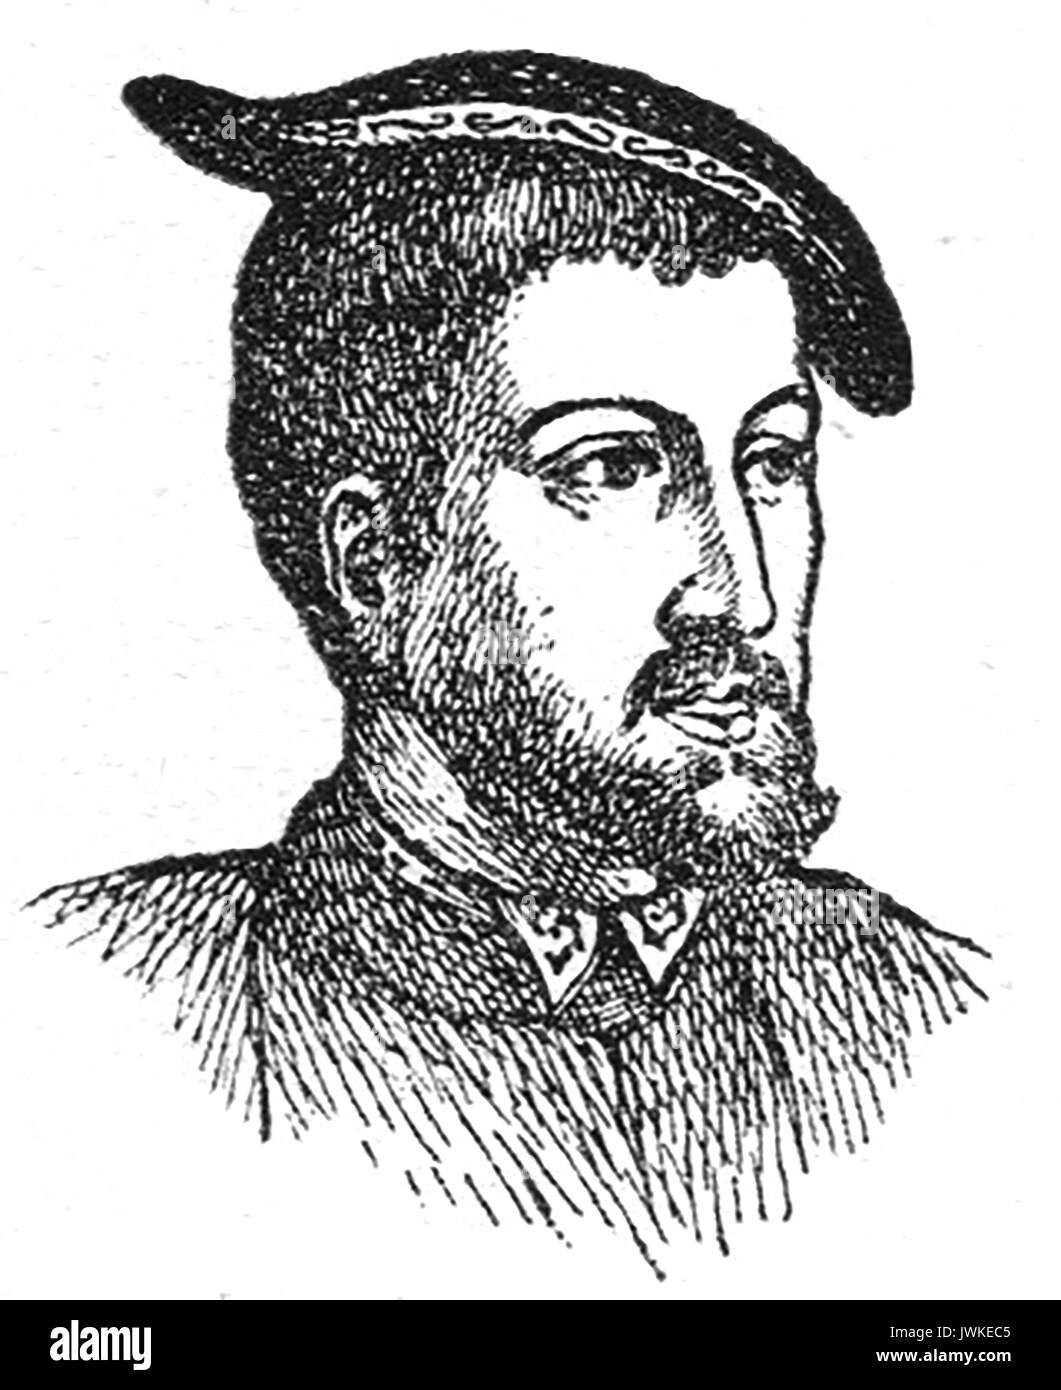 An Early portrait of King Charles V 5th - Stock Image